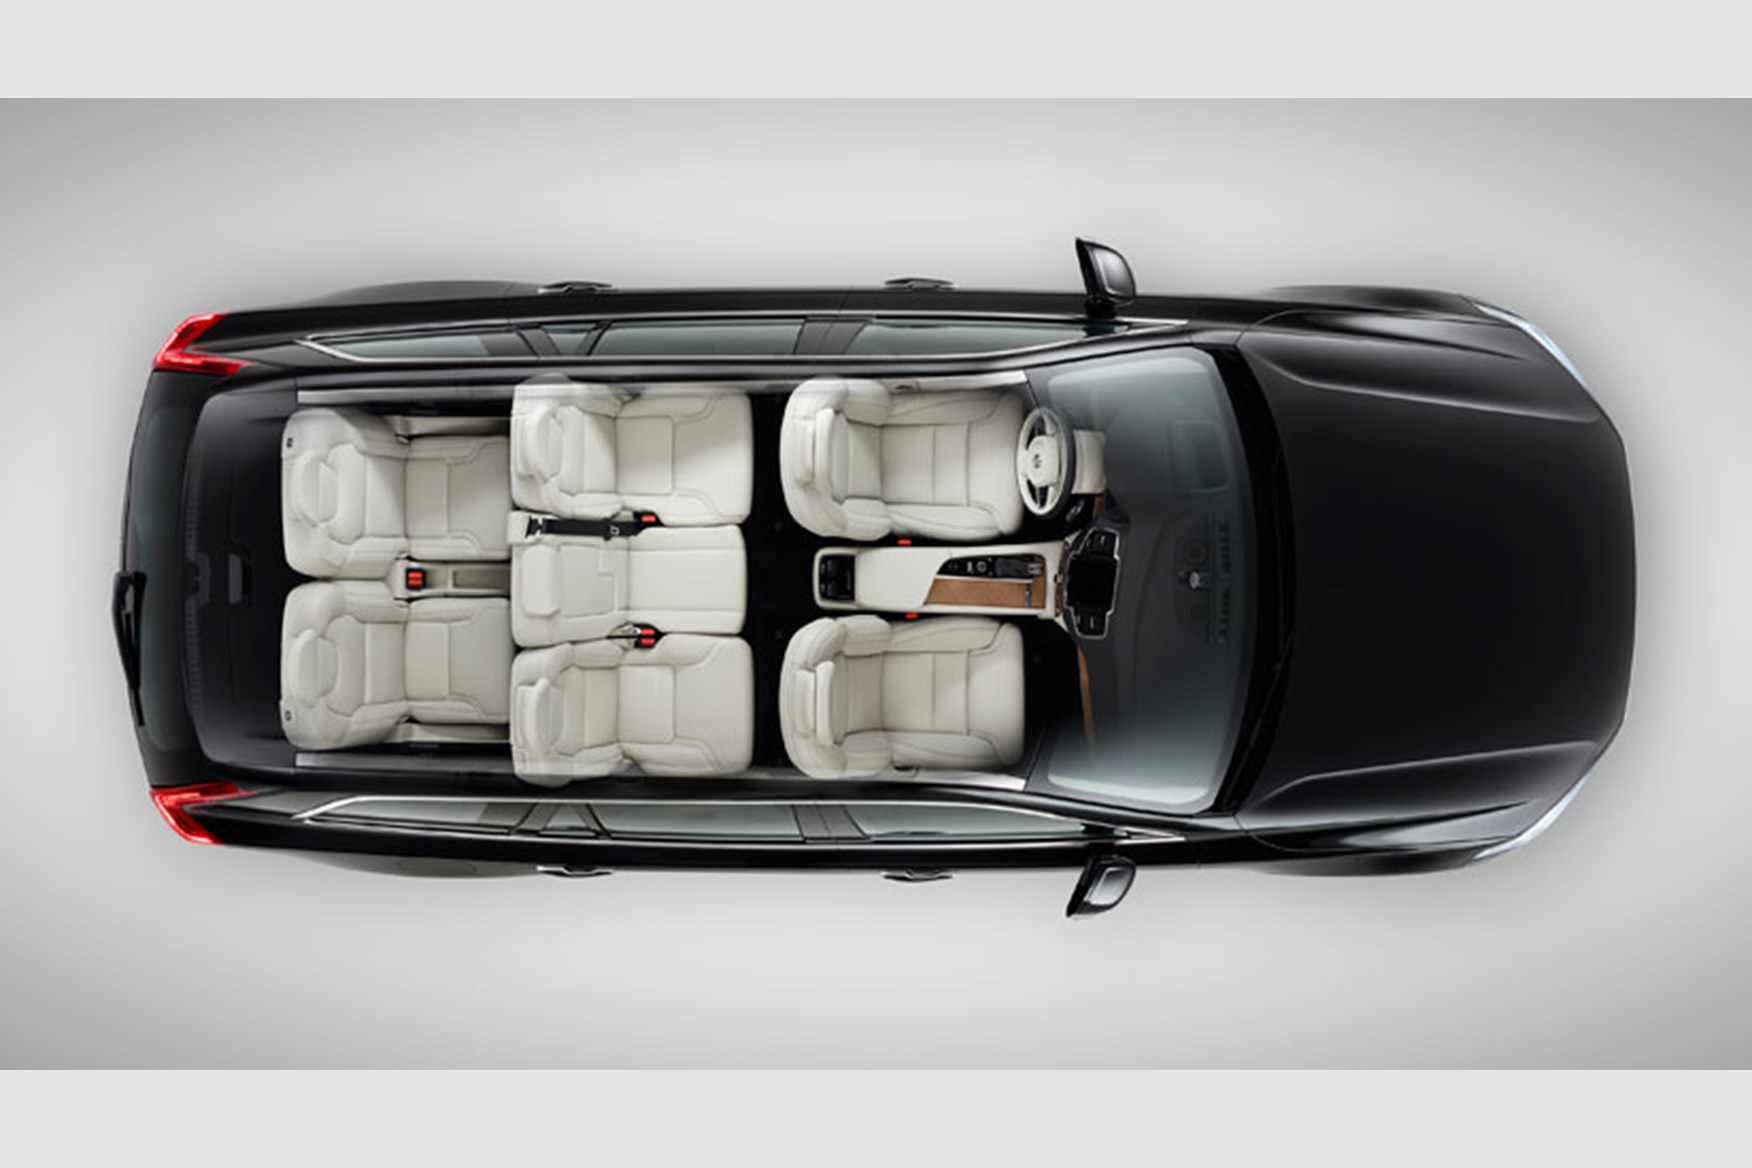 volvo 2014 xc90. the seven seat layout of new 2014 volvo xc90 says rear seats accommodate adults up to 170cm xc90